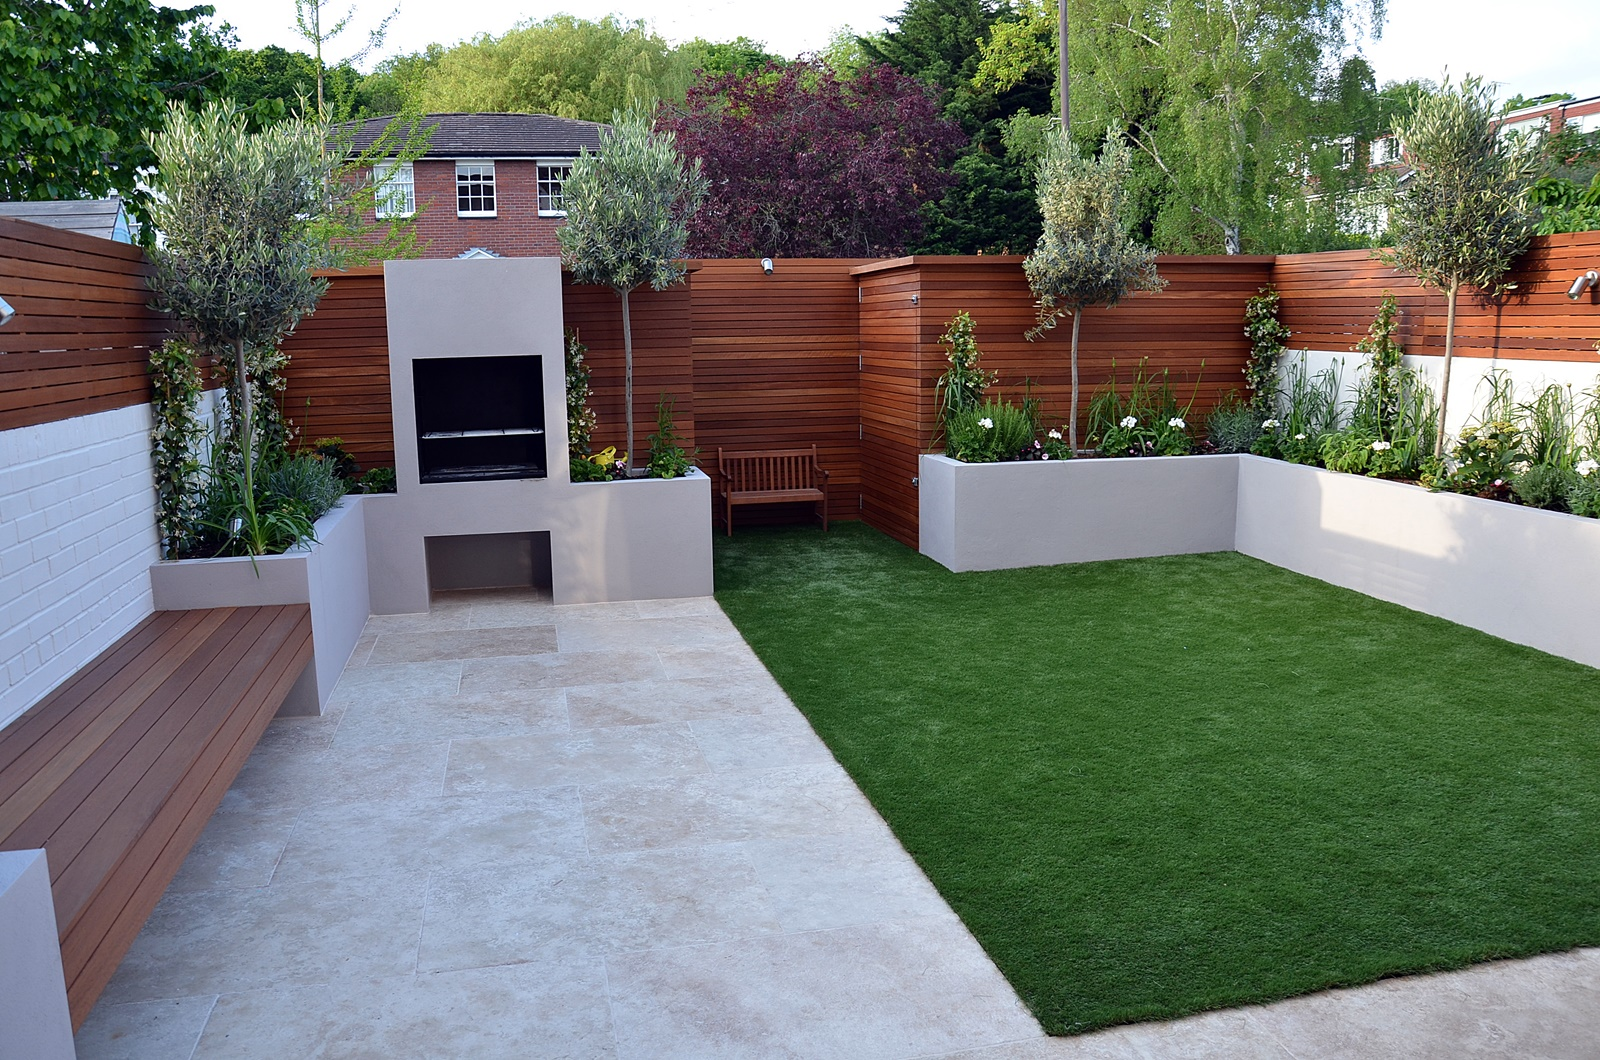 Modern garden design fulham chelsea clapham battersea for Back garden designs uk